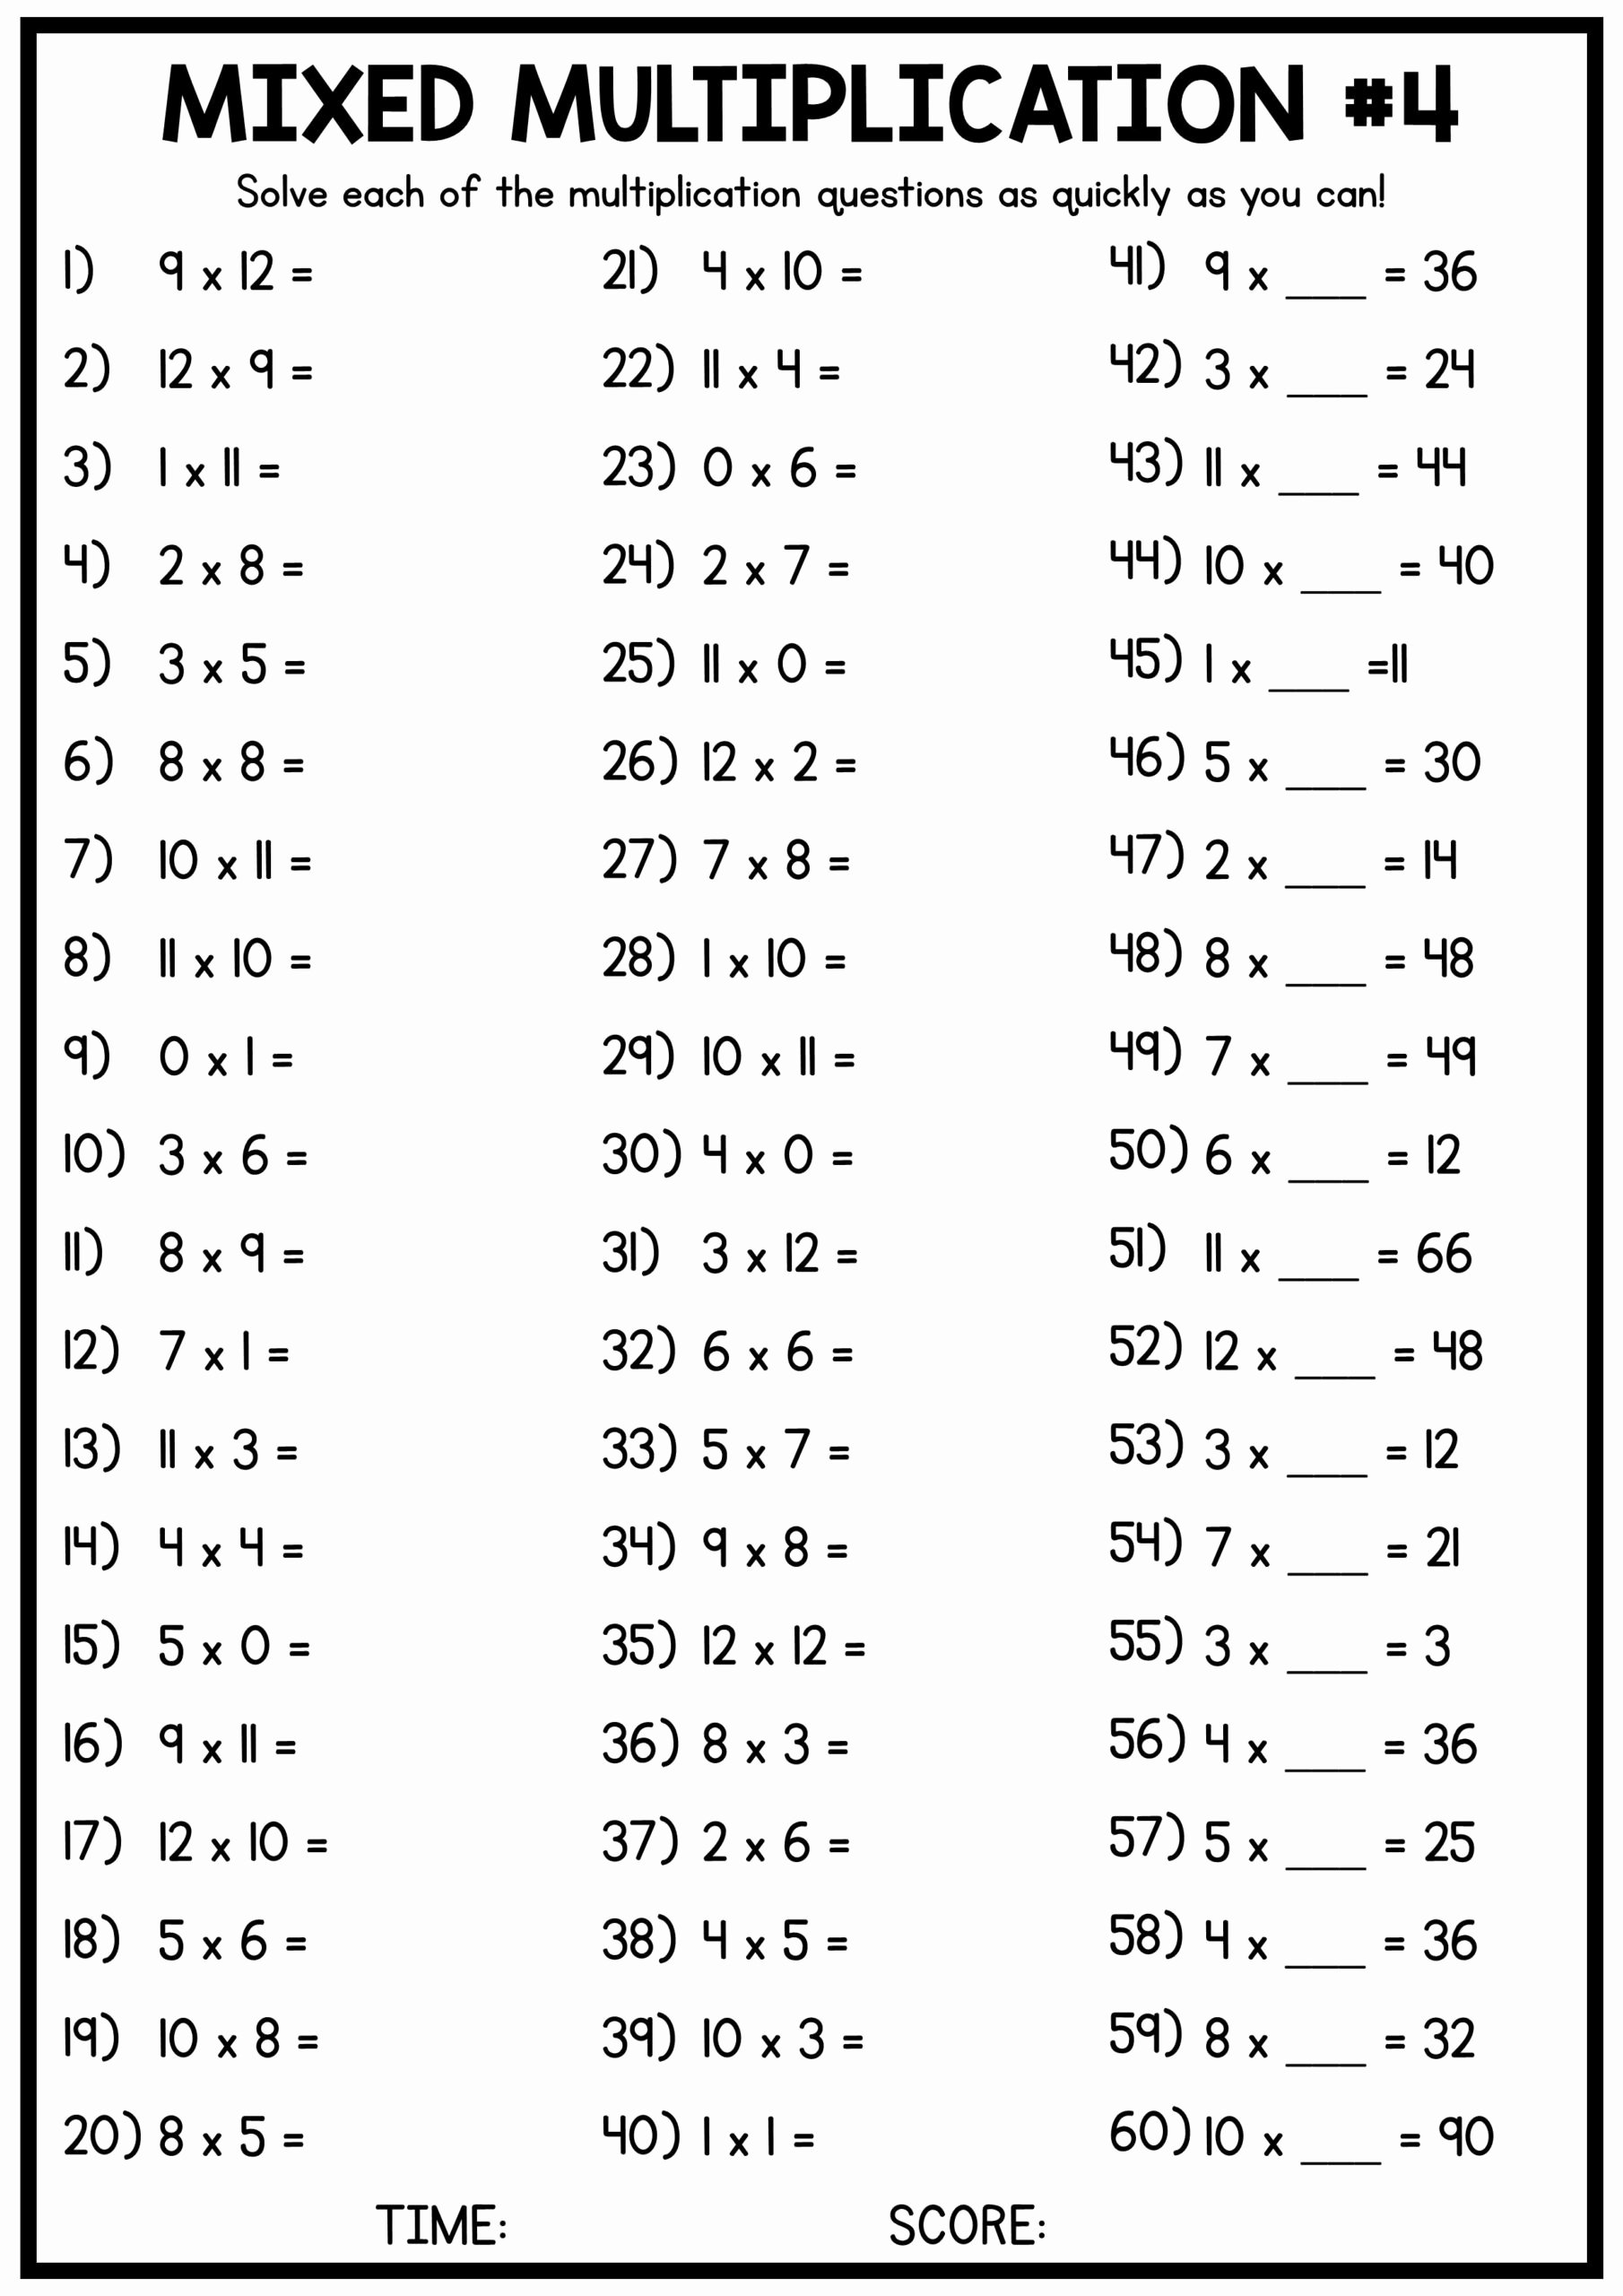 Blank Multiplication Worksheets New Mixed Multiplication Times Table Worksheets Free In Tables